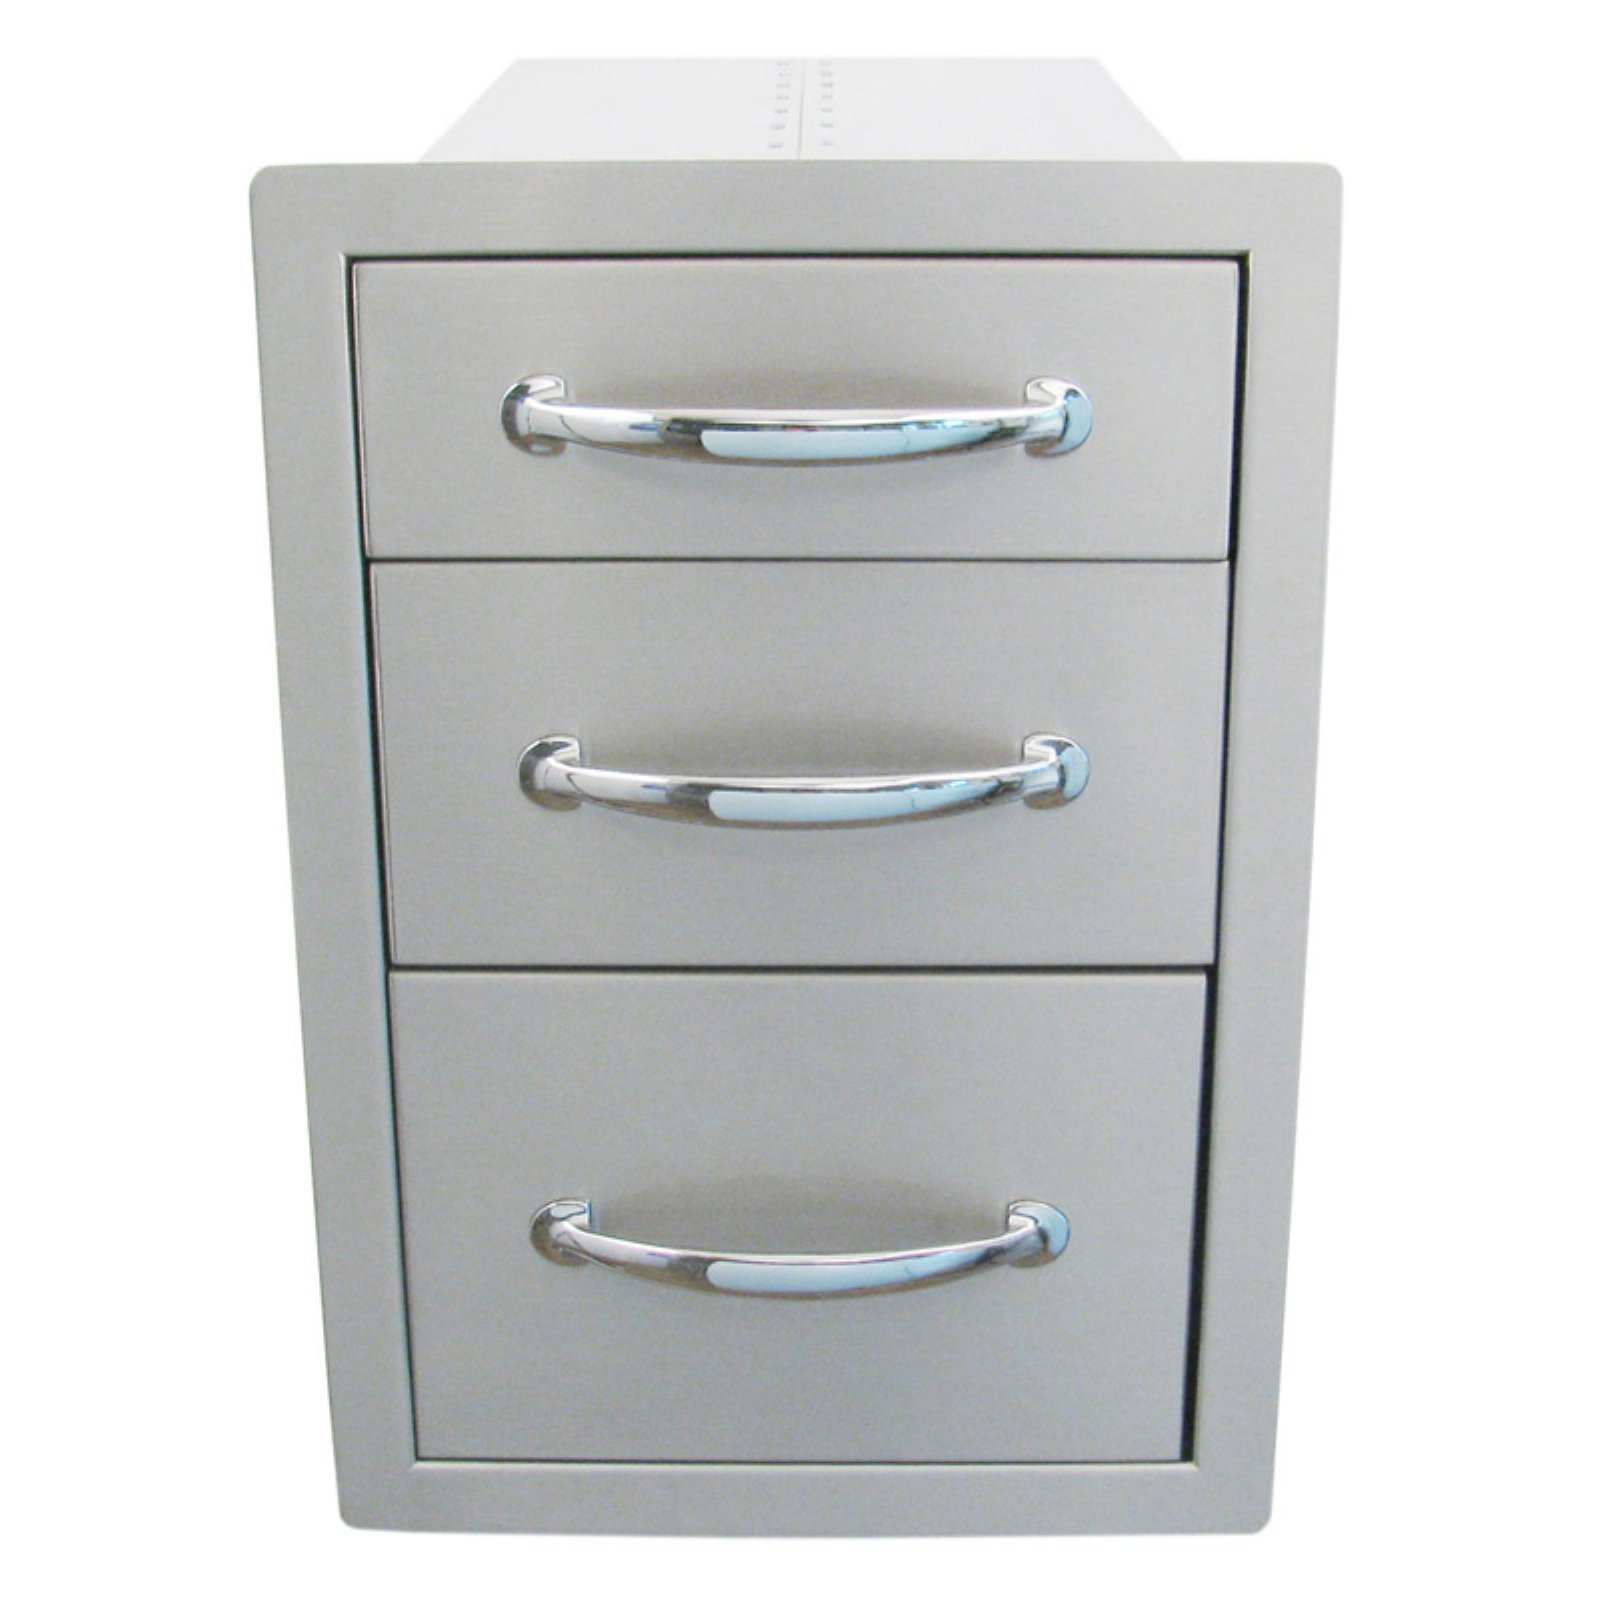 Sunstone Grills Classic Series 14 In. Flush Triple Access Drawer